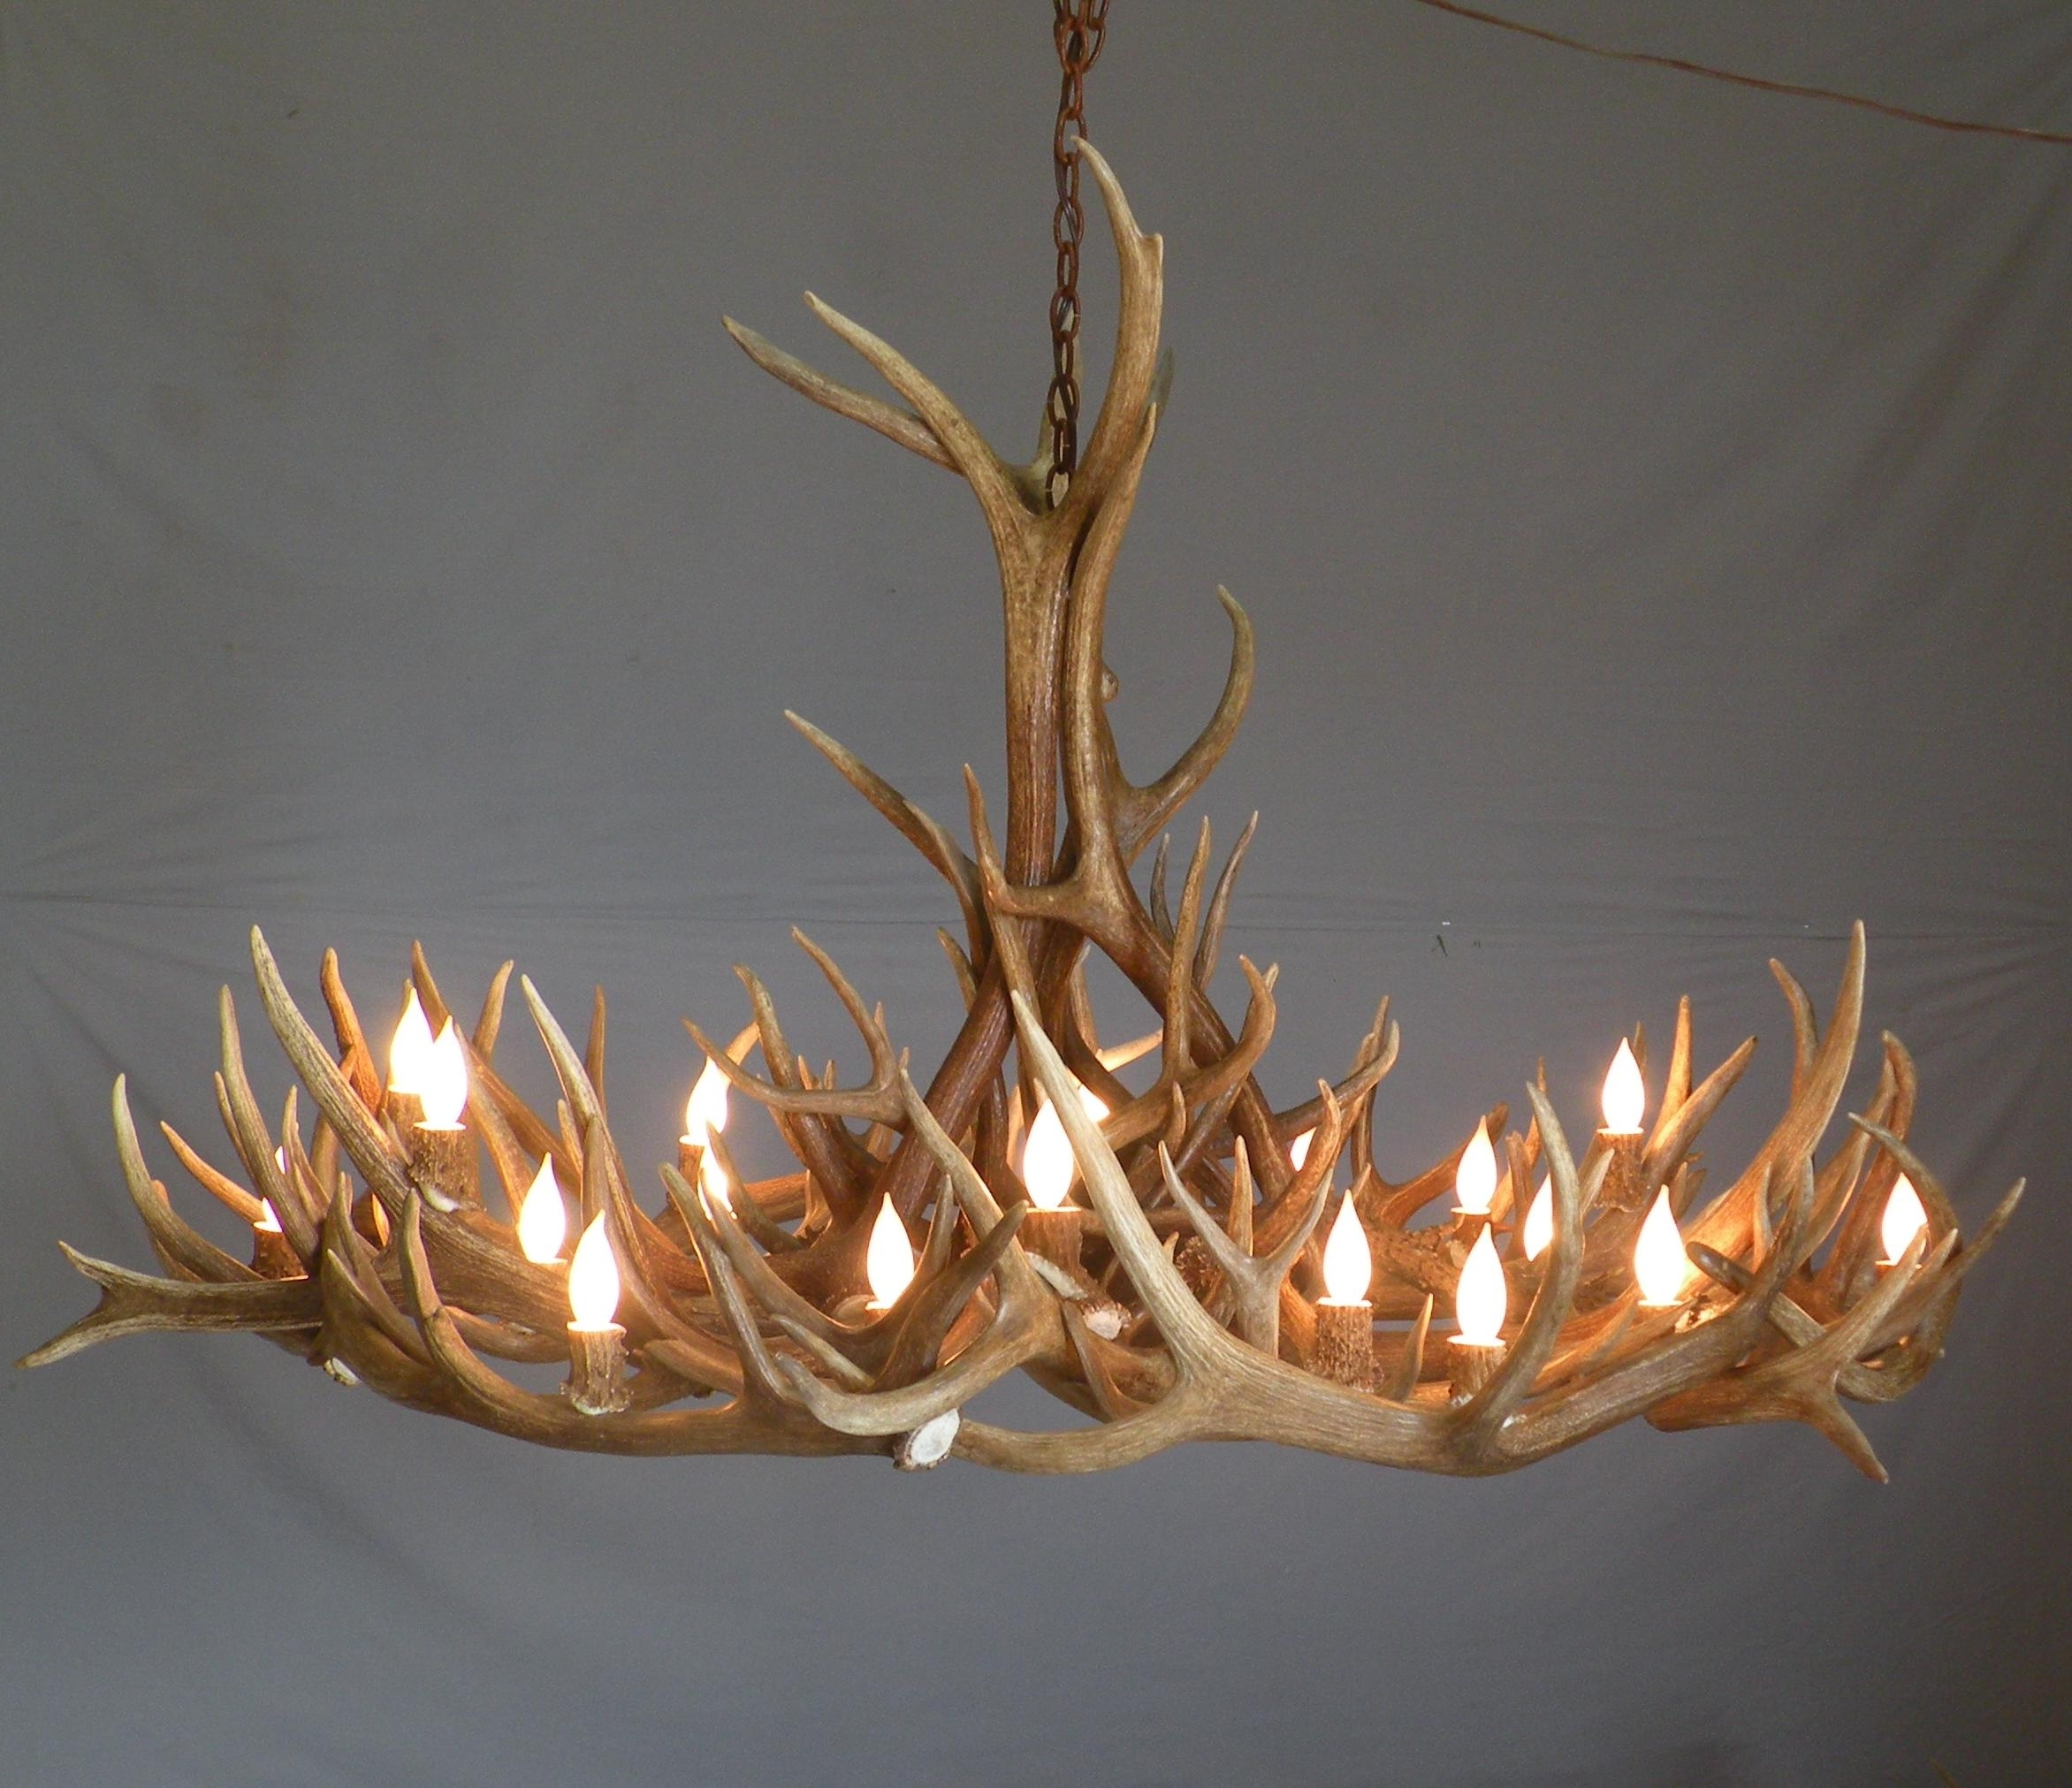 Photos: Antler Decor Colorado, Antler Art And Design, Antler Throughout Most Recently Released Antler Chandeliers And Lighting (View 4 of 20)